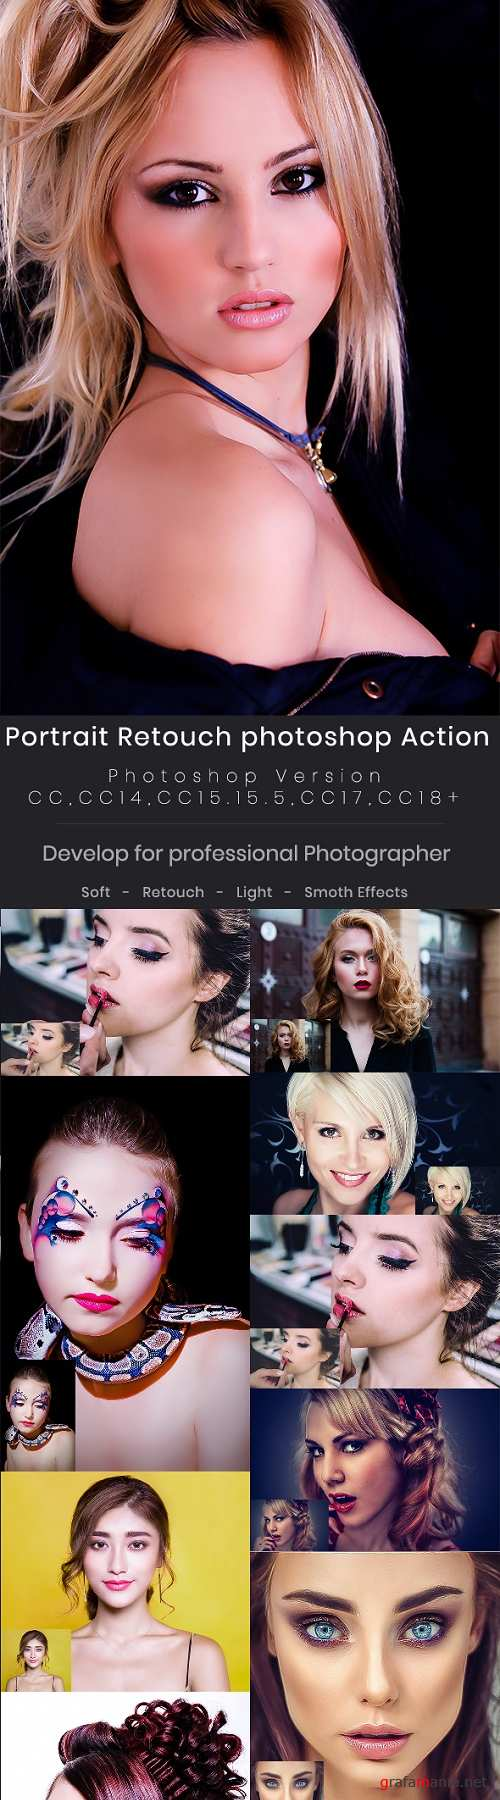 10 Portrait Retouch Photoshop Action 22126762